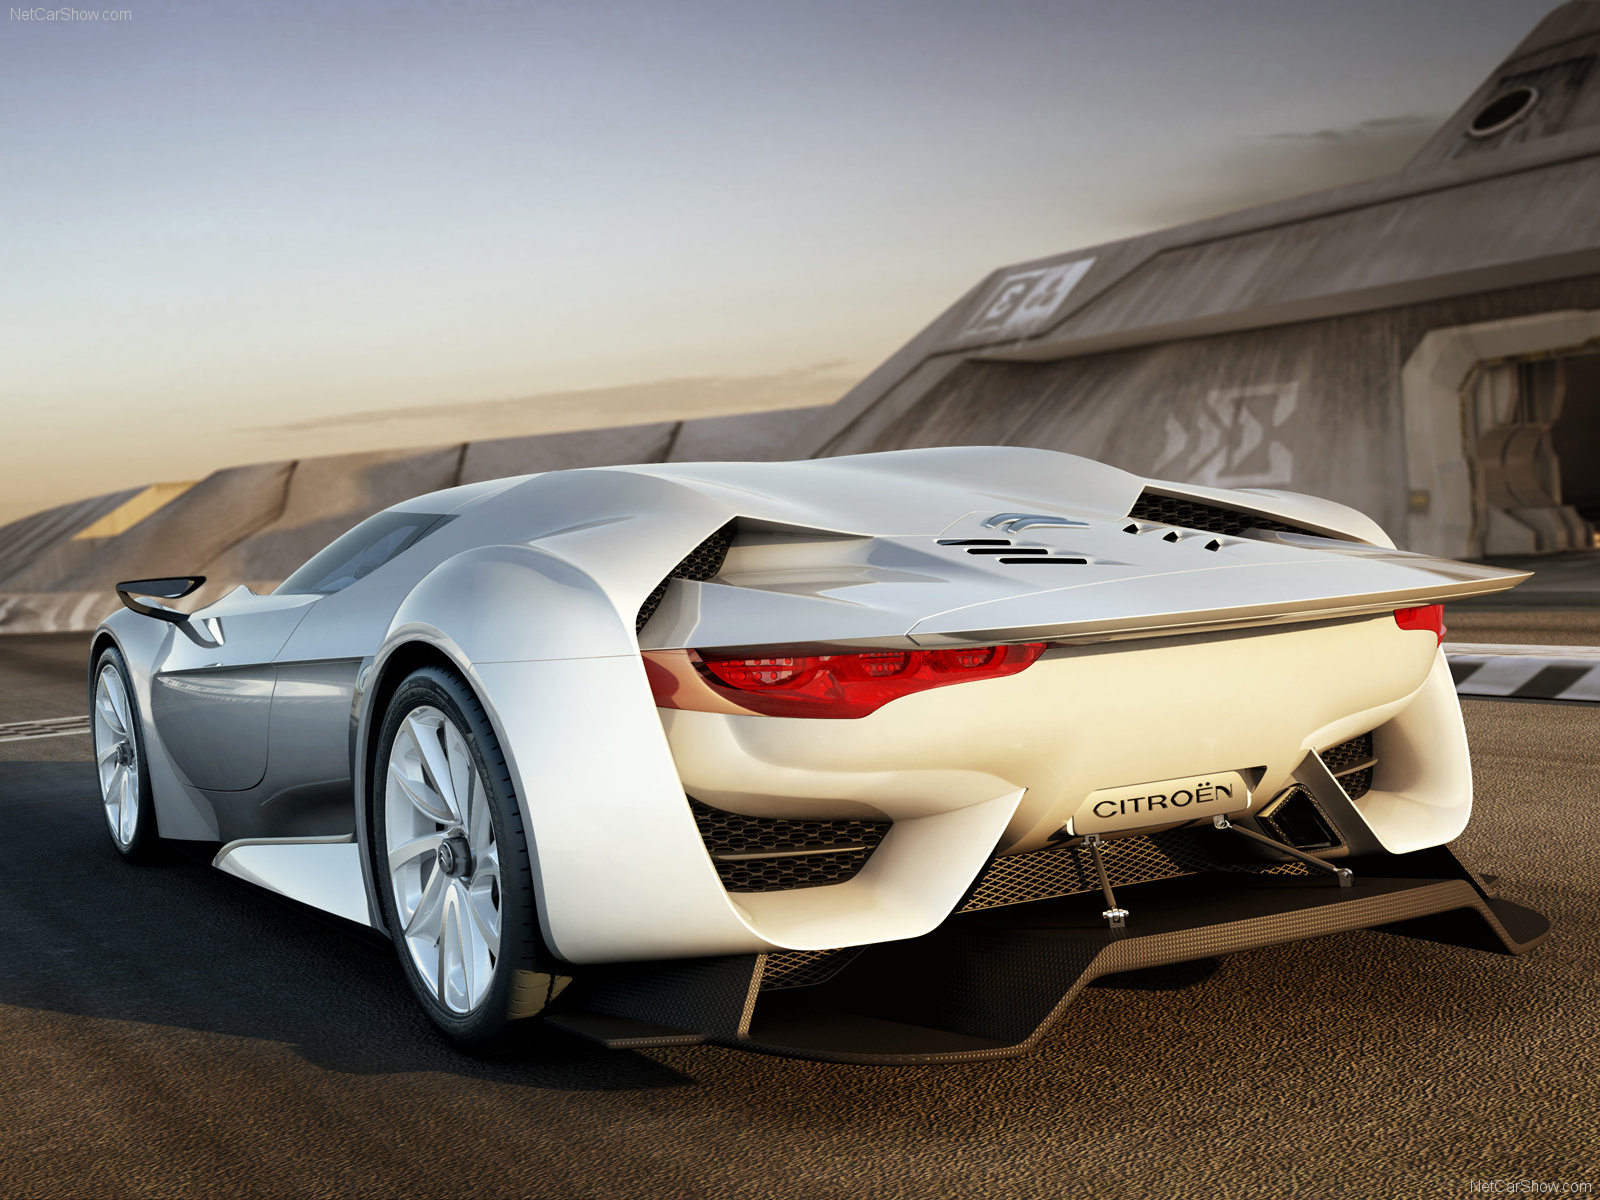 Awesome Car Wallpapers Hd